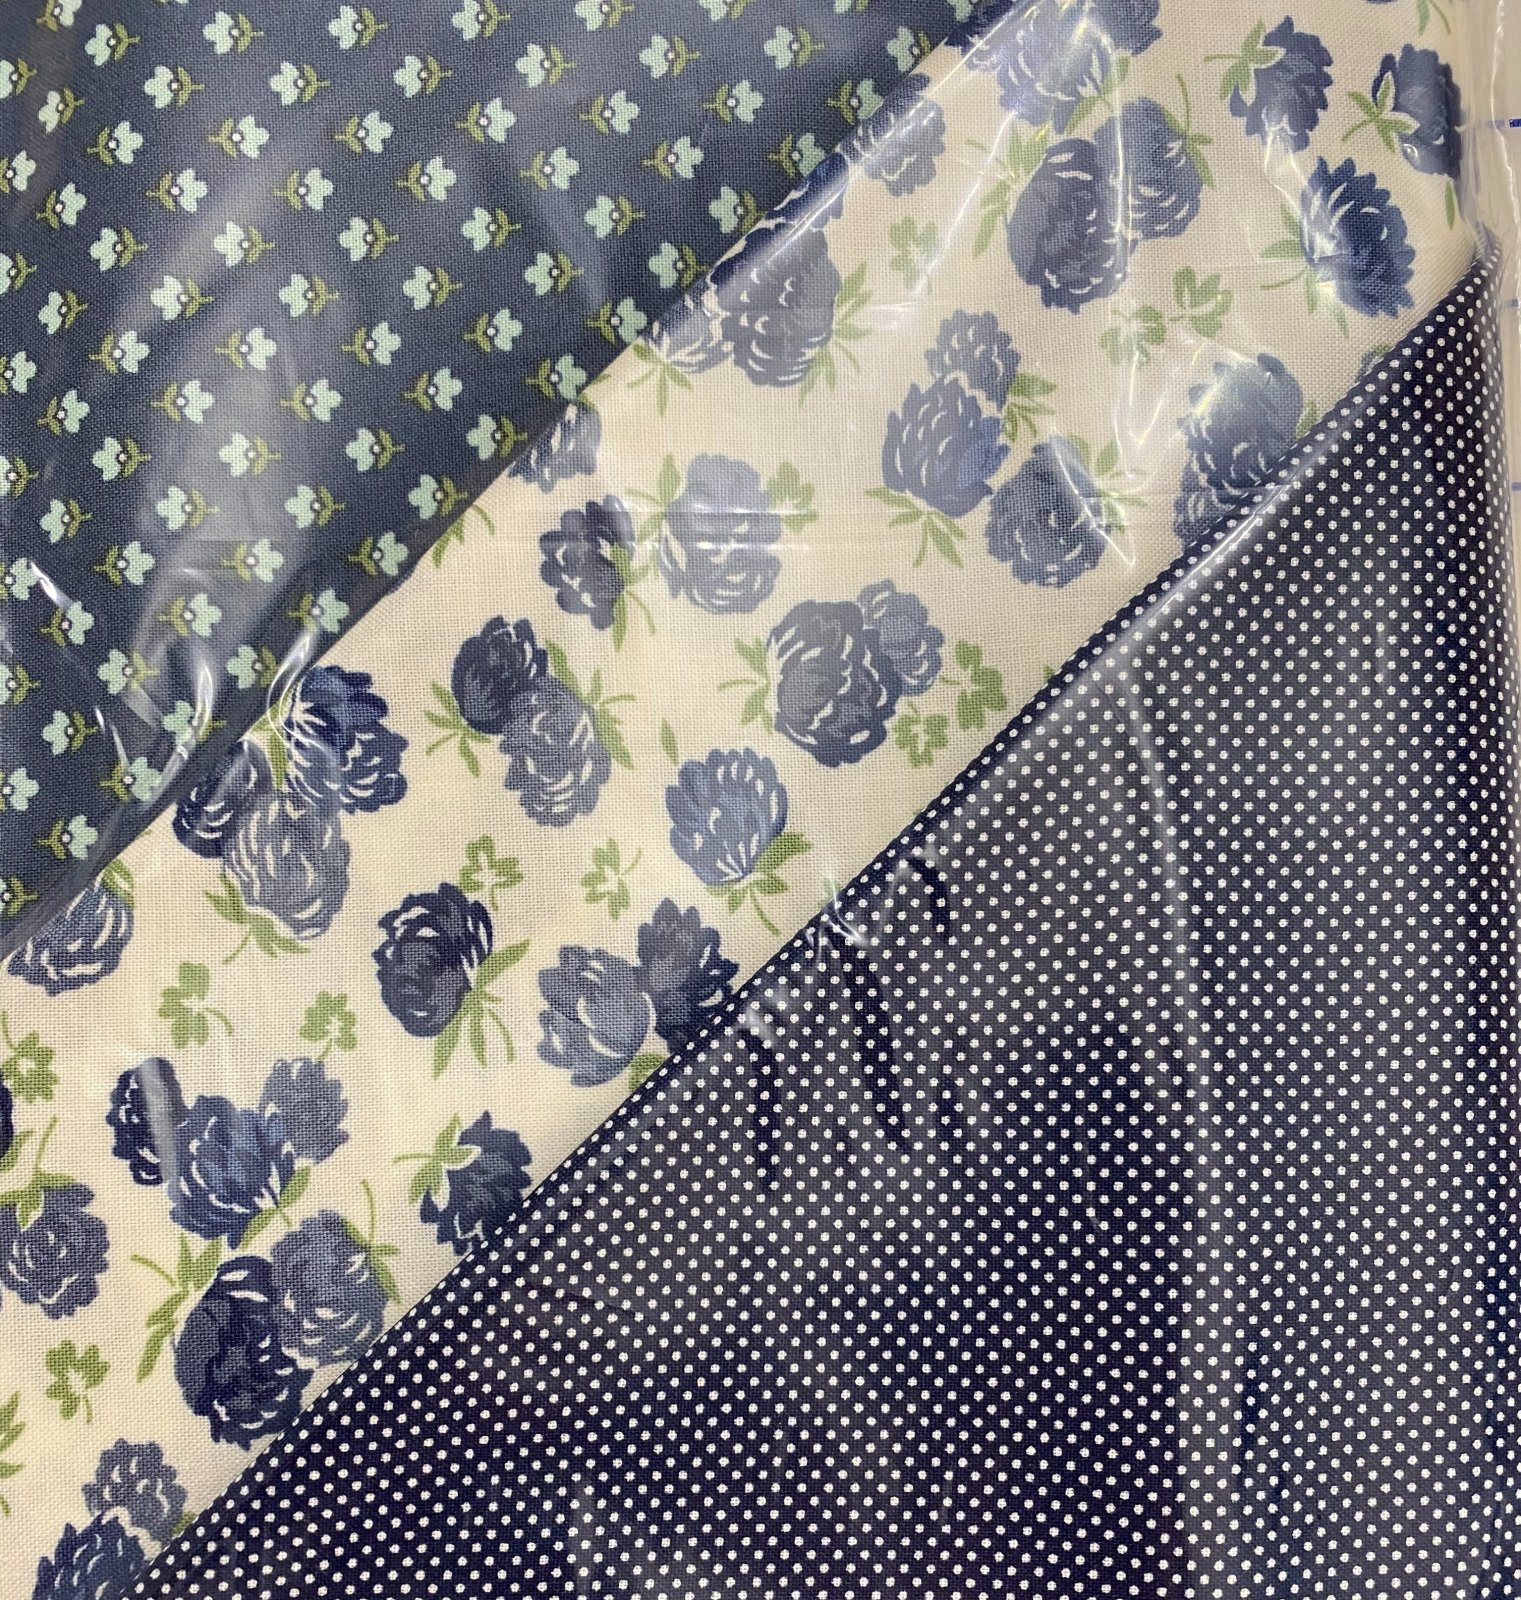 At Home 3 yd bundle navy flowers and dots